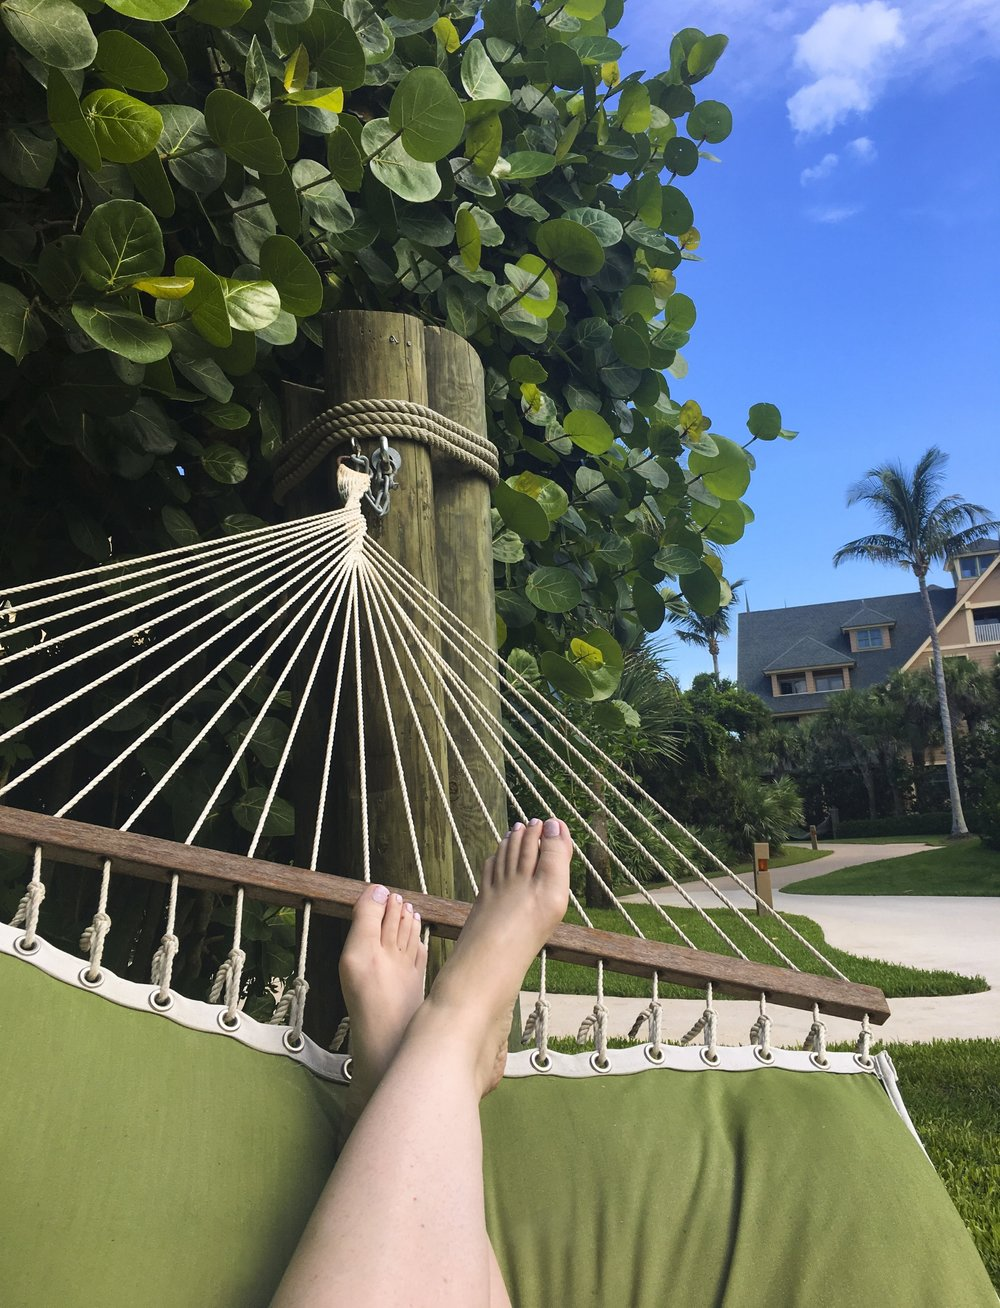 There are plenty of hammocks for relaxing.